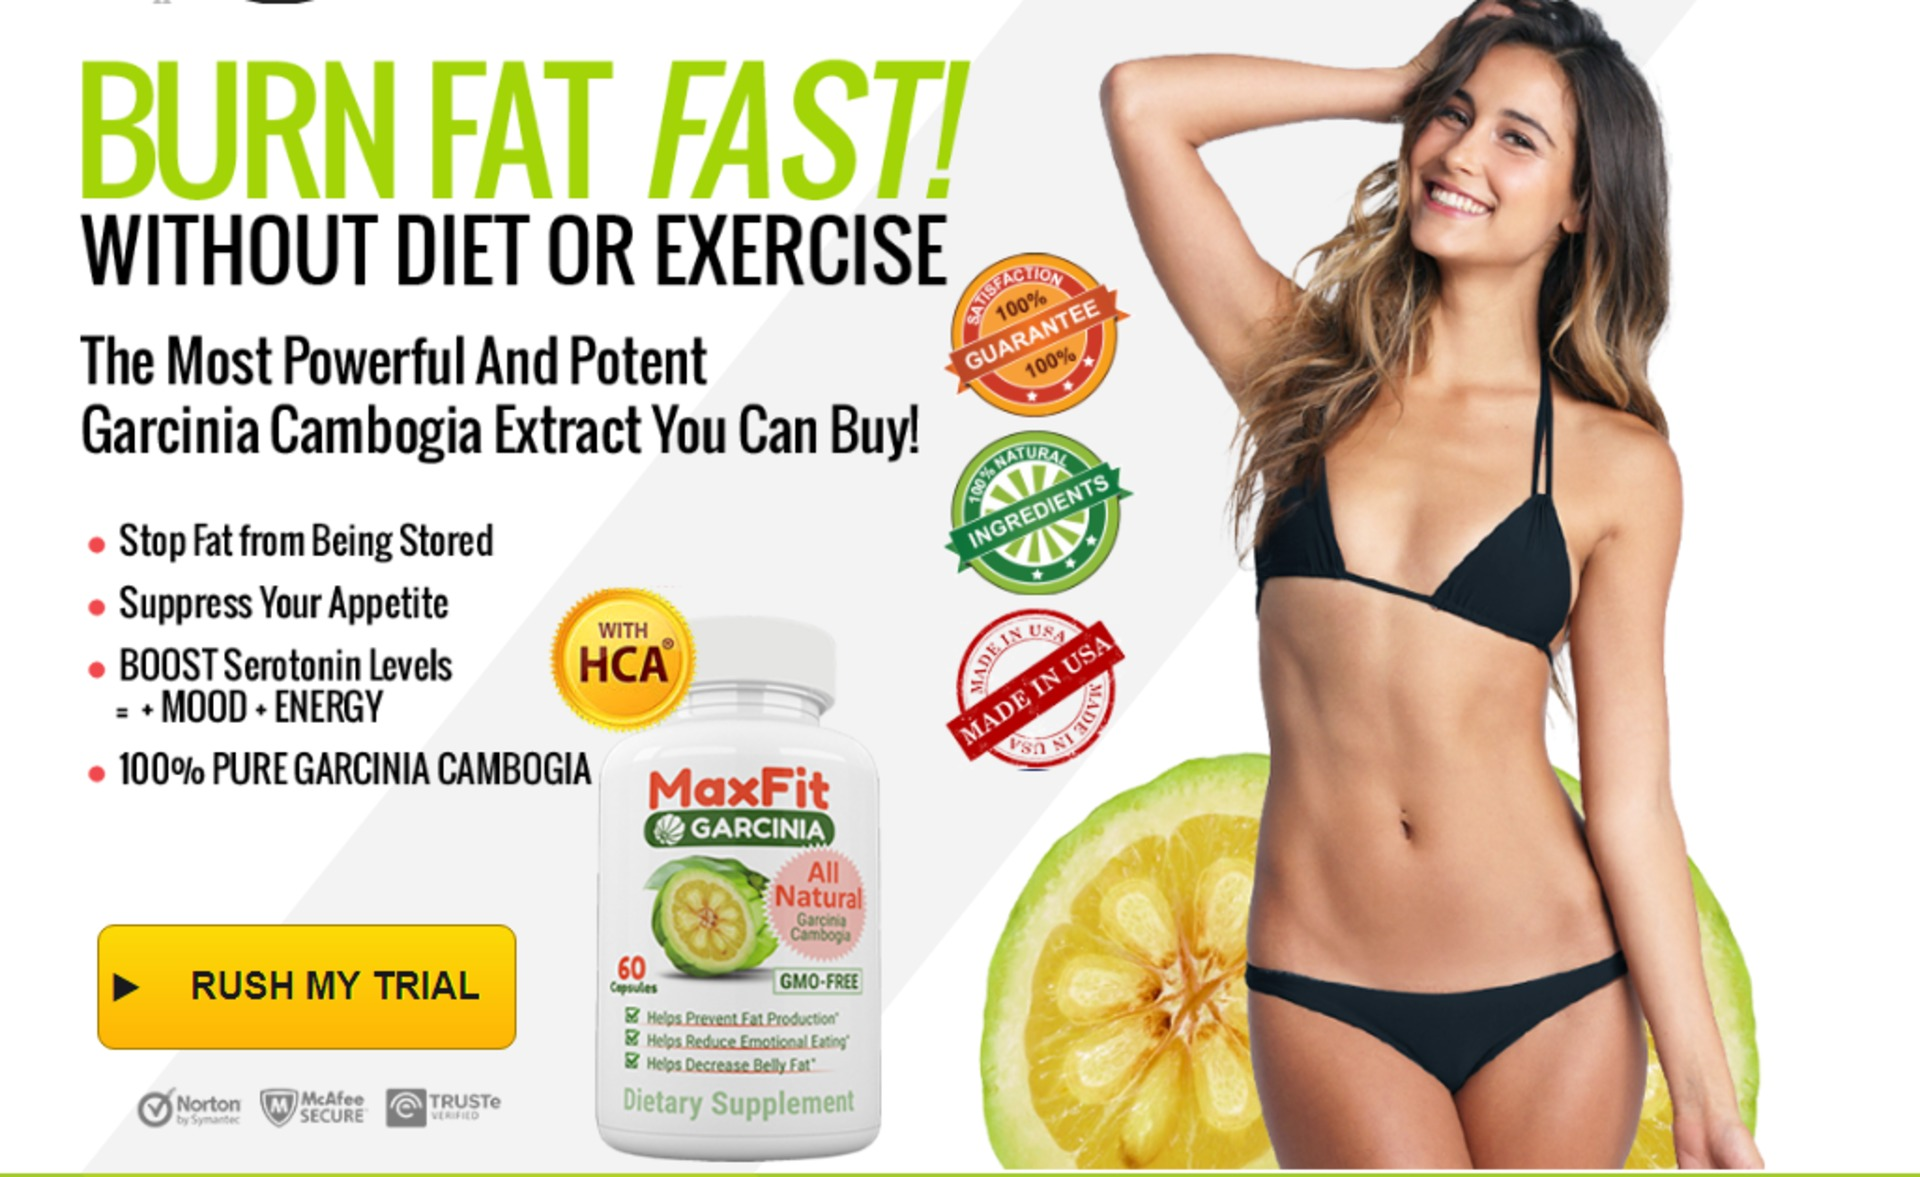 MaxFit Garcinia Supplement: Is This Worth Investing? image